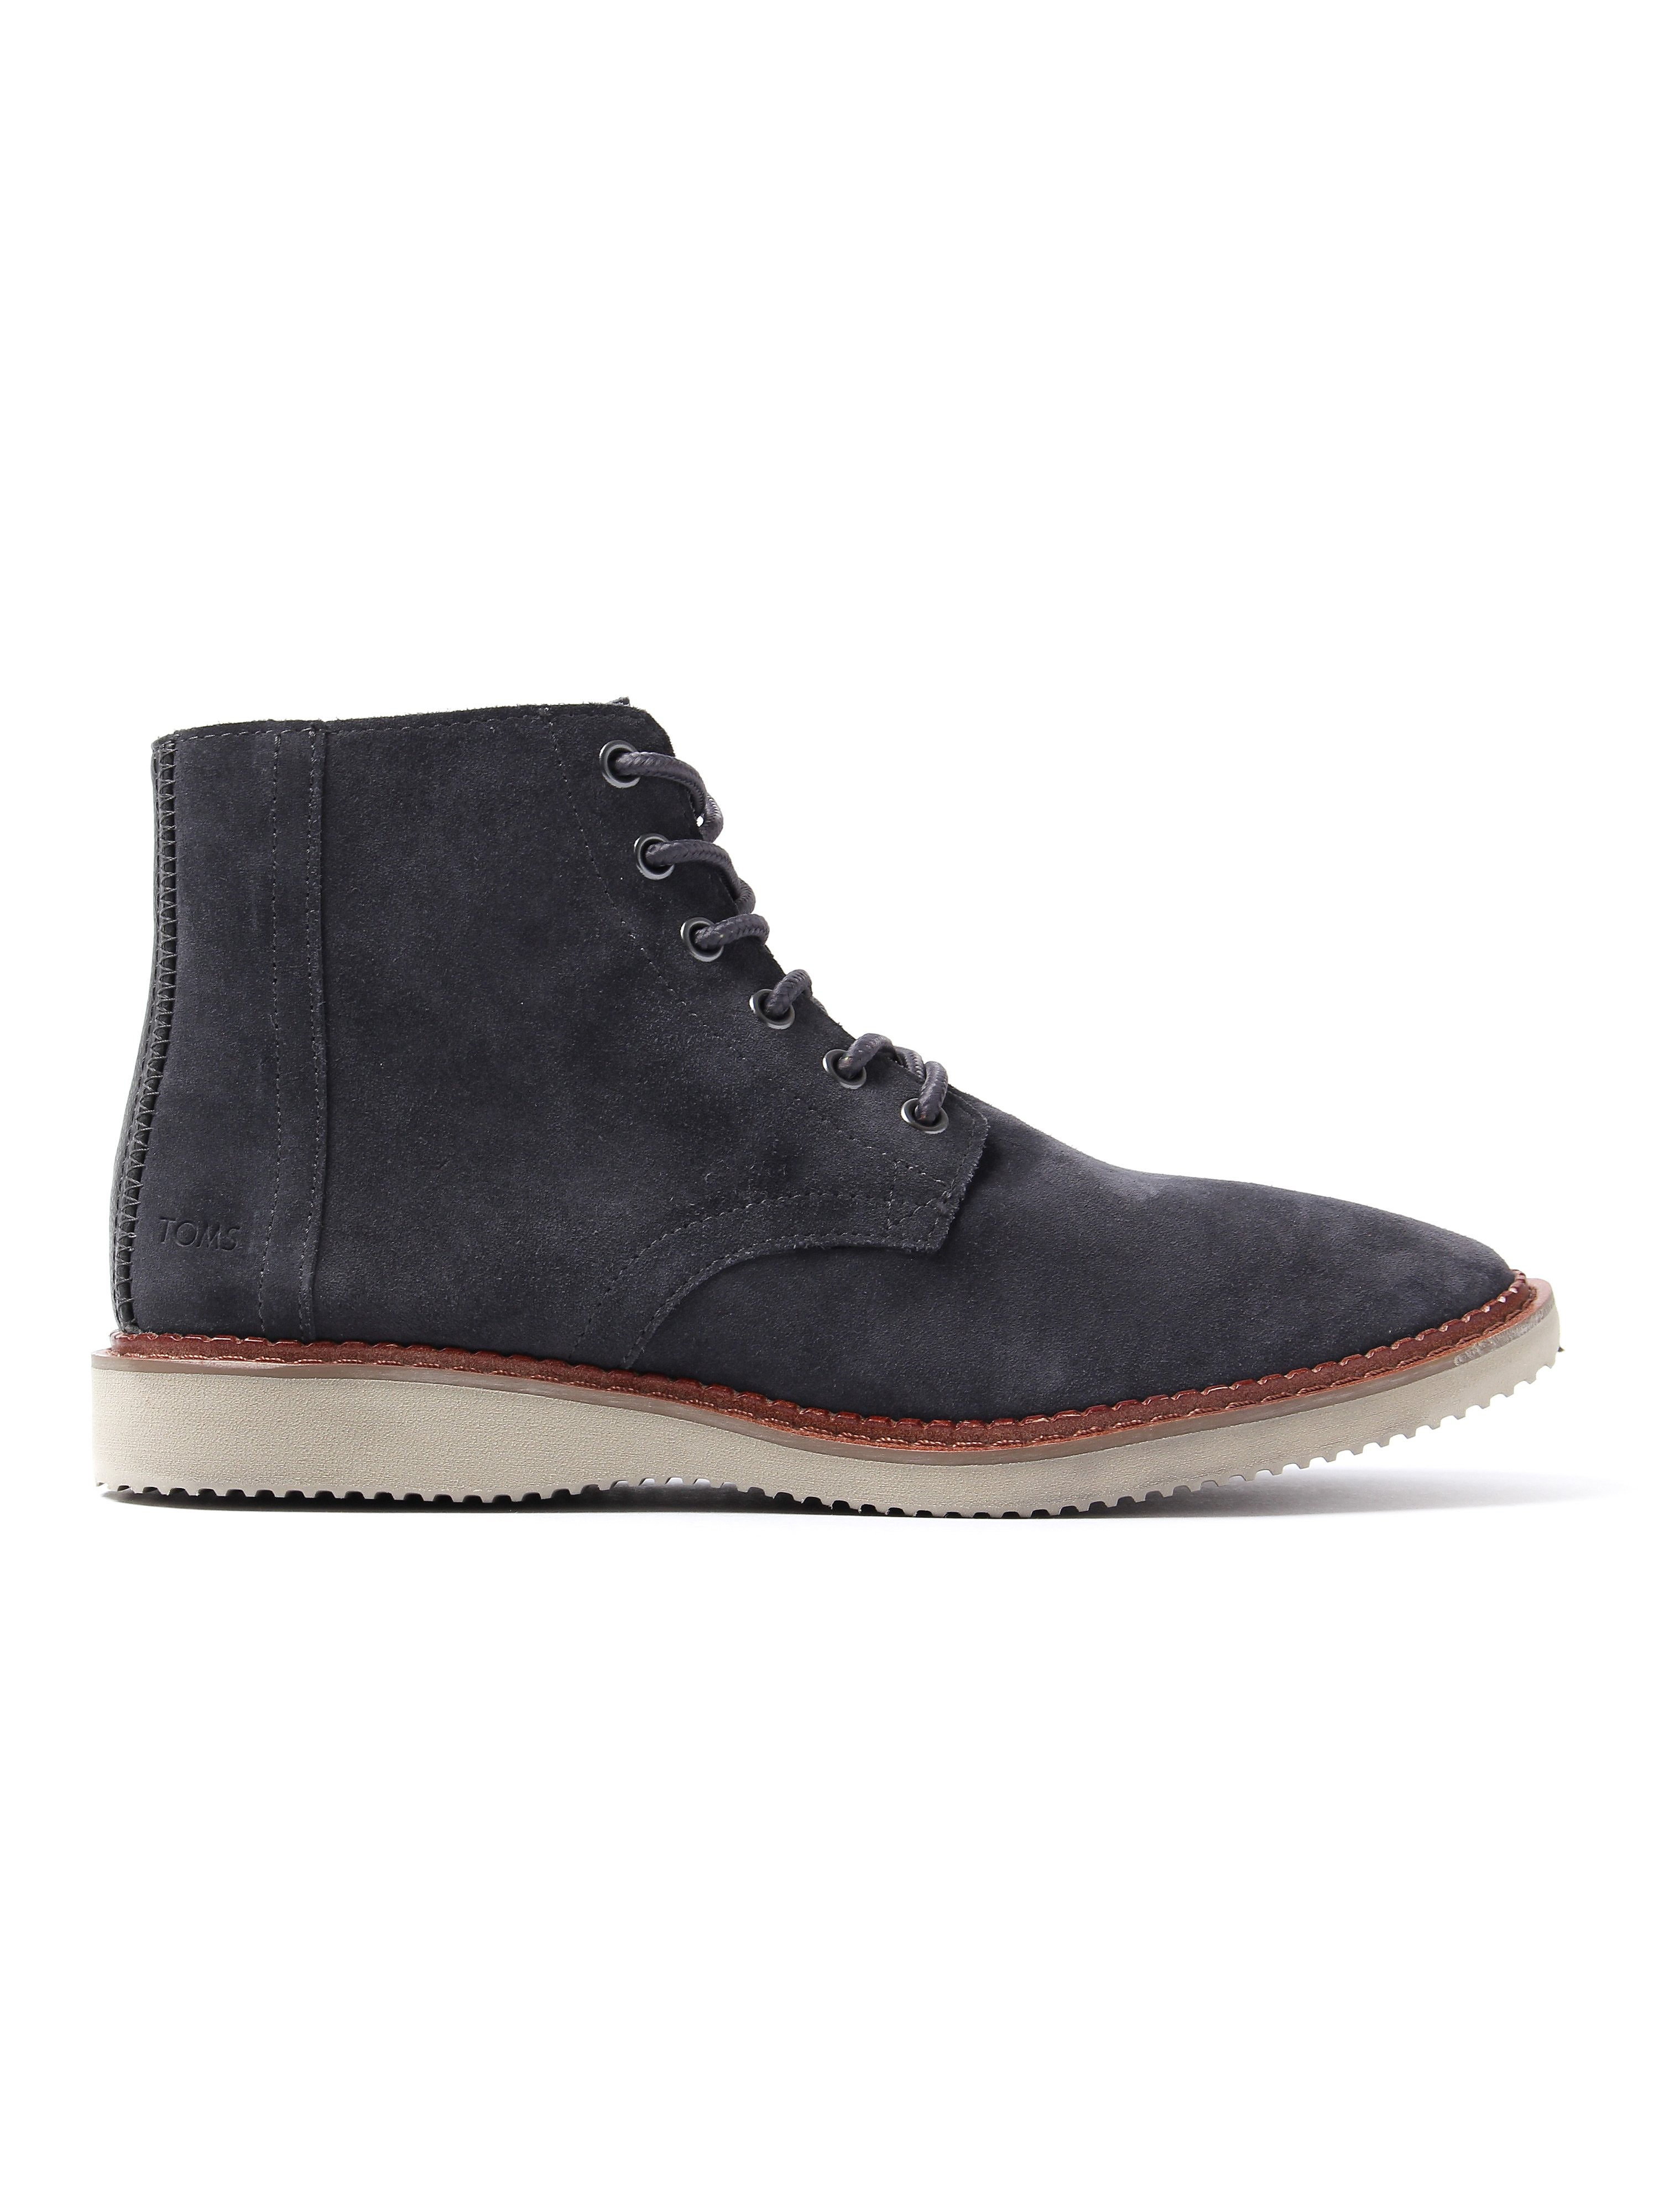 Toms Men's Porter Boots - Forged Iron Suede